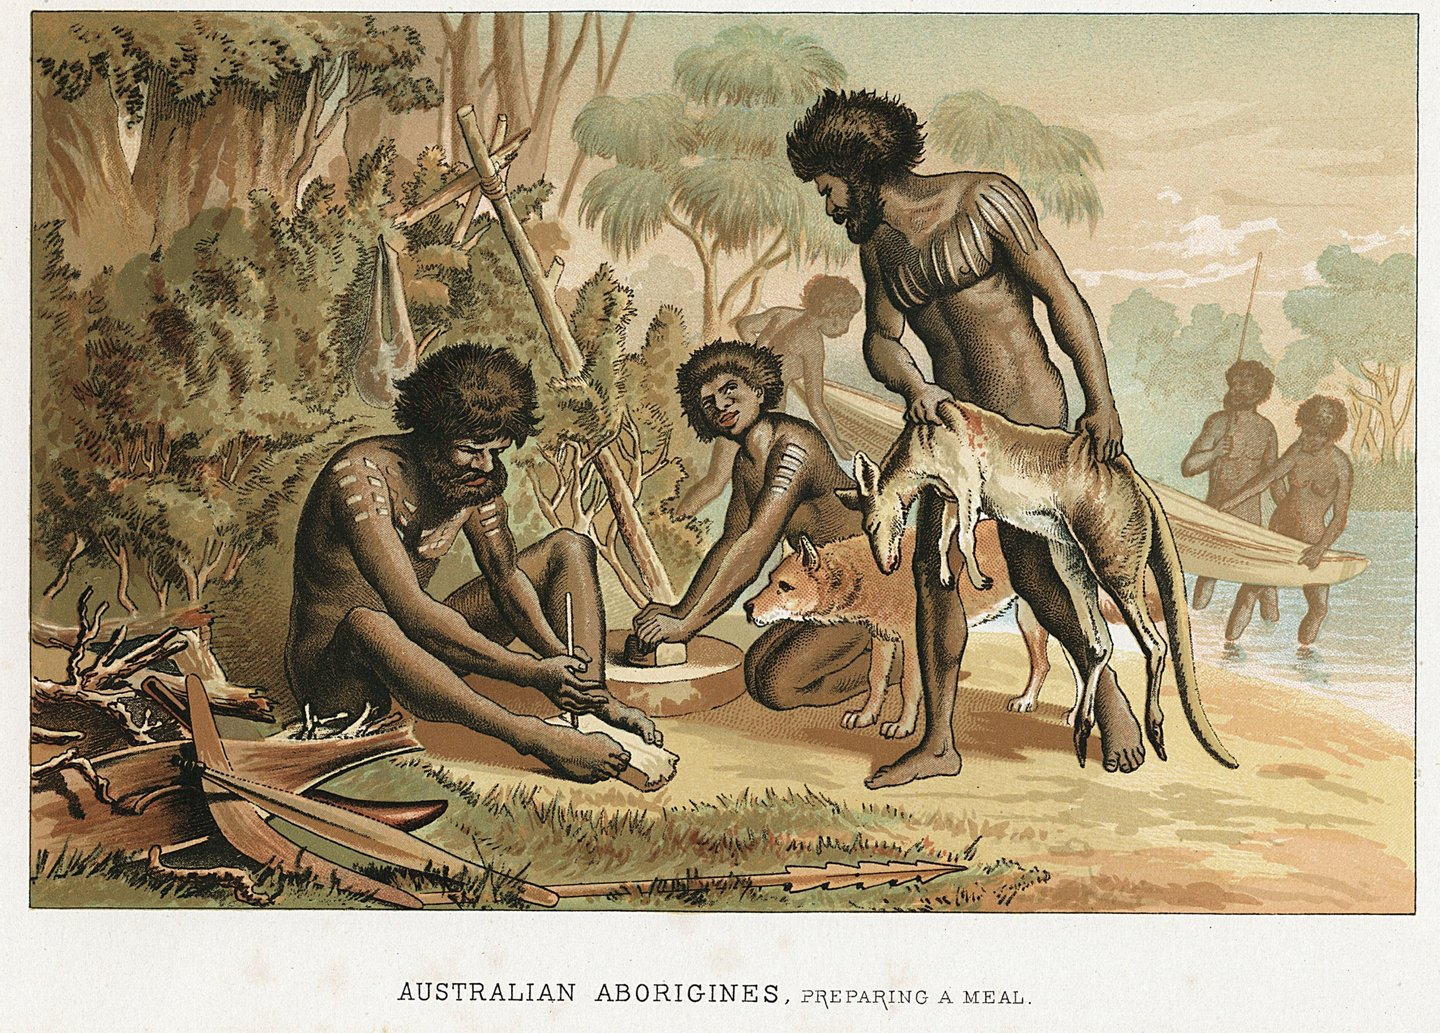 Australian natives preparing meal from animal they have hunted.